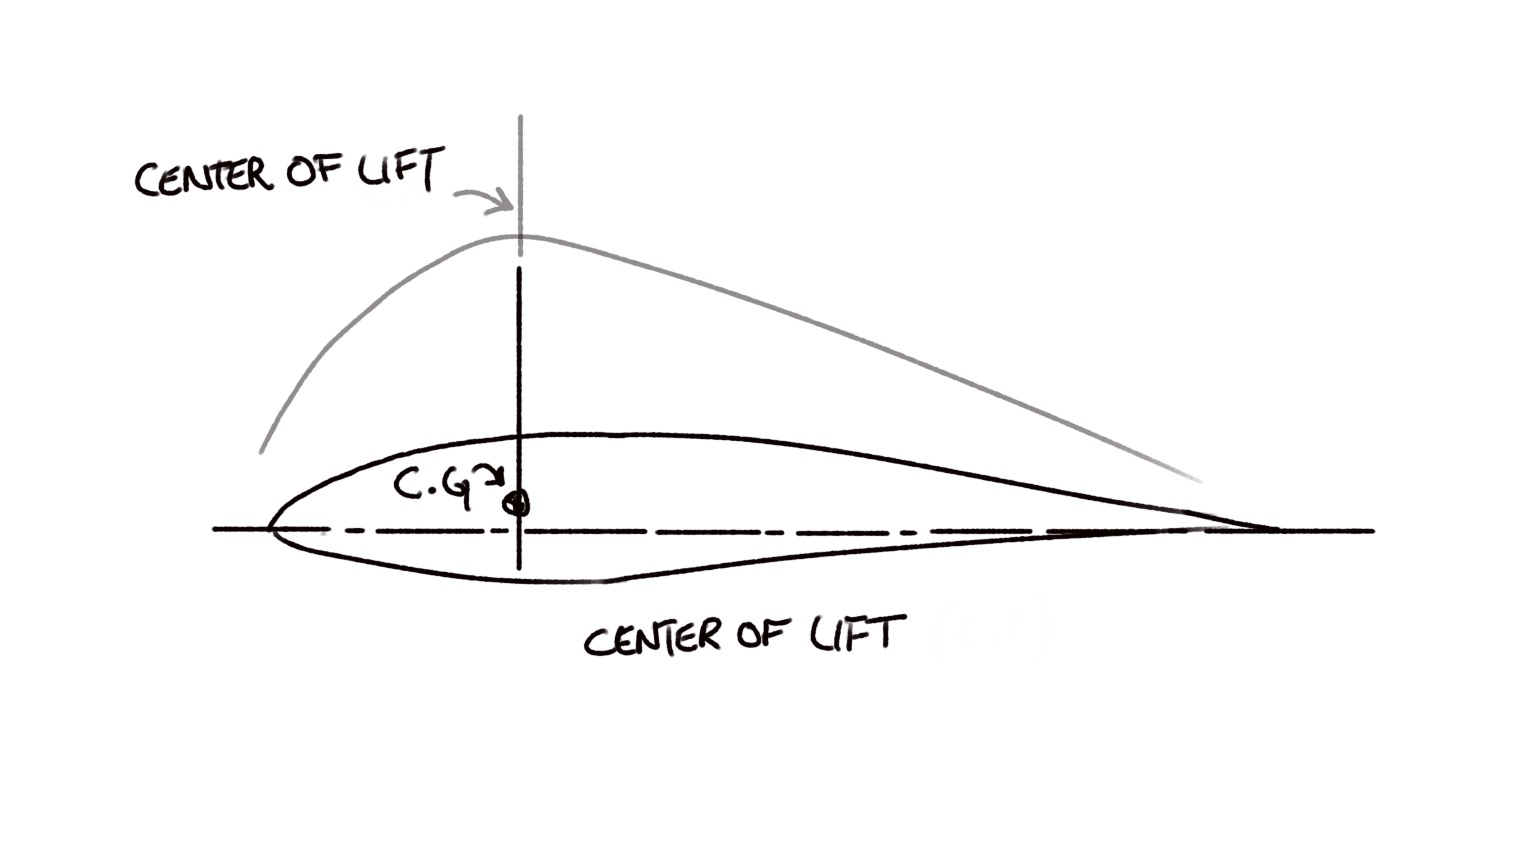 Where Should an RC Airplane Center of Gravity be? | Flite Test